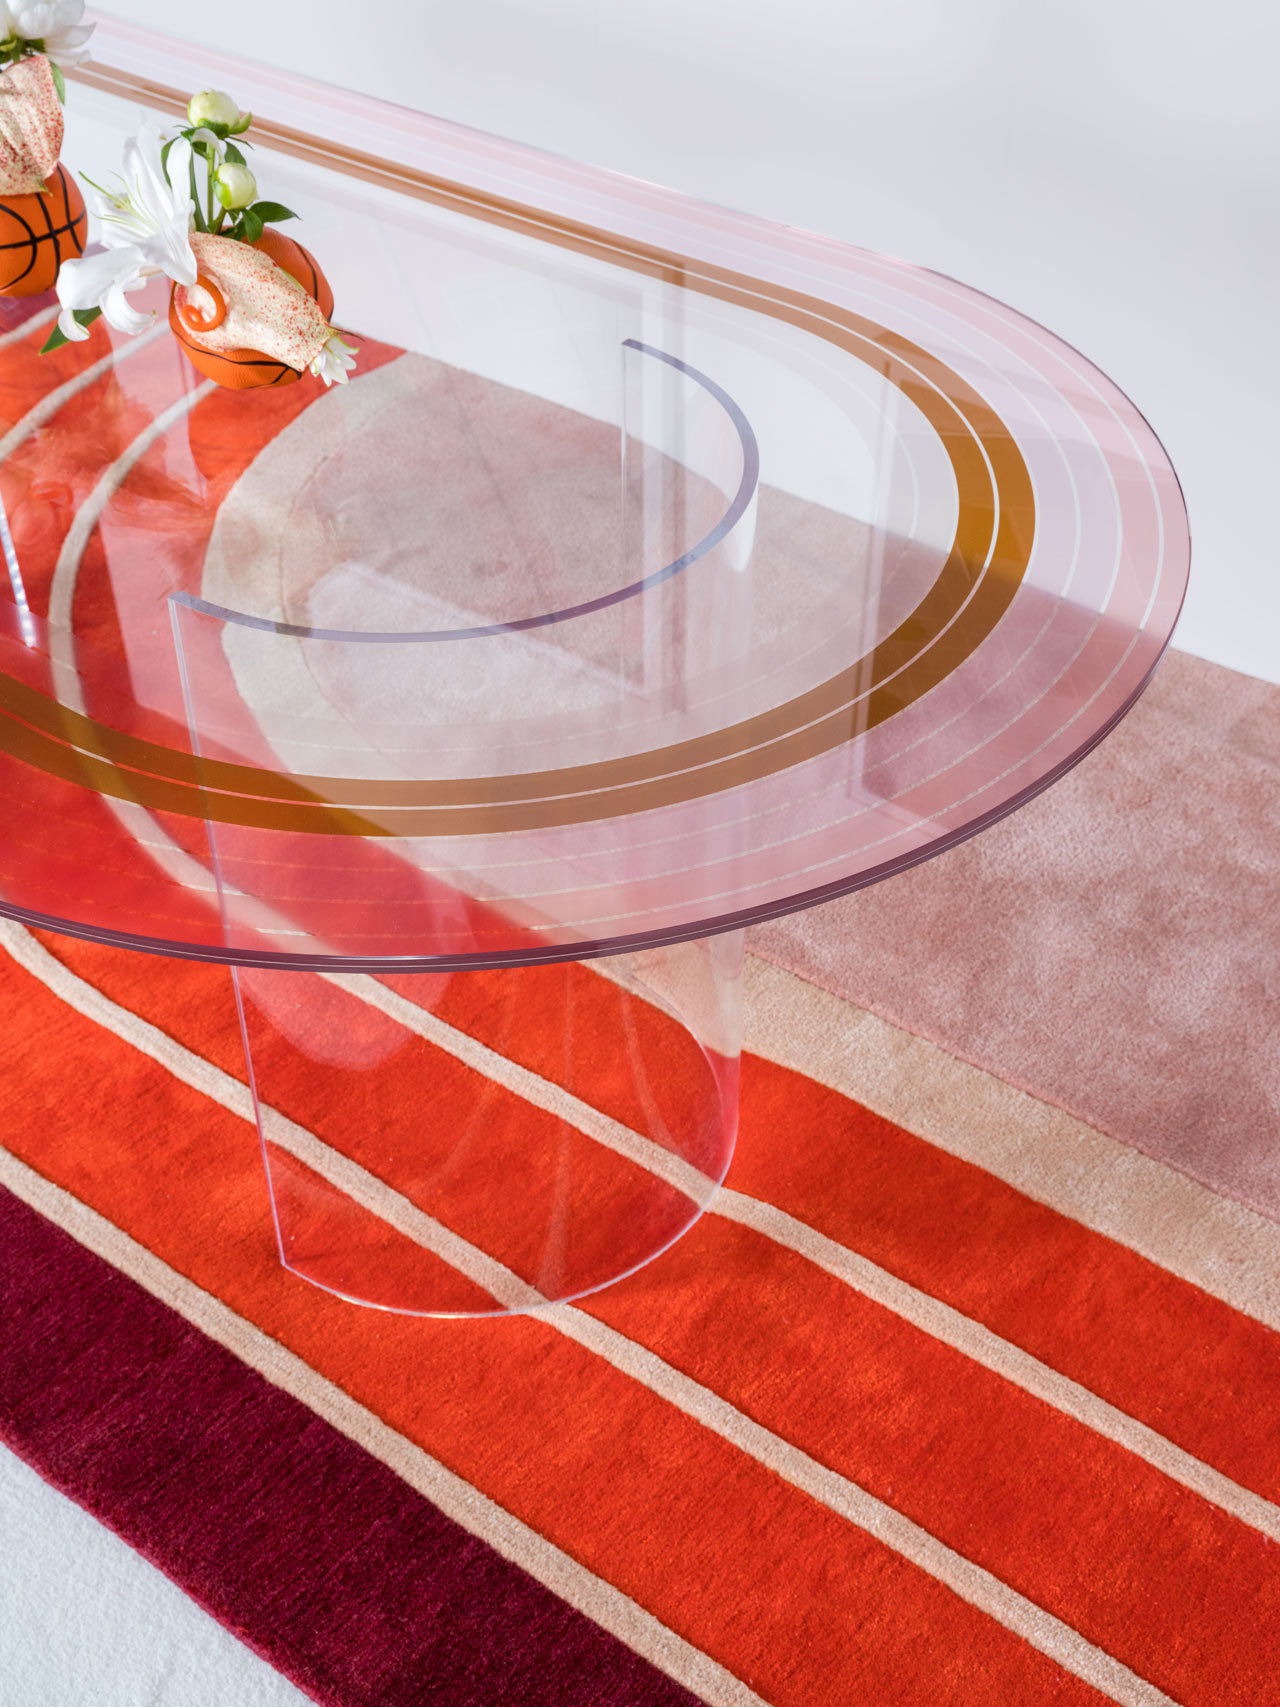 An Aesthetic Pursuit Launches Sports-Inspired Court Series